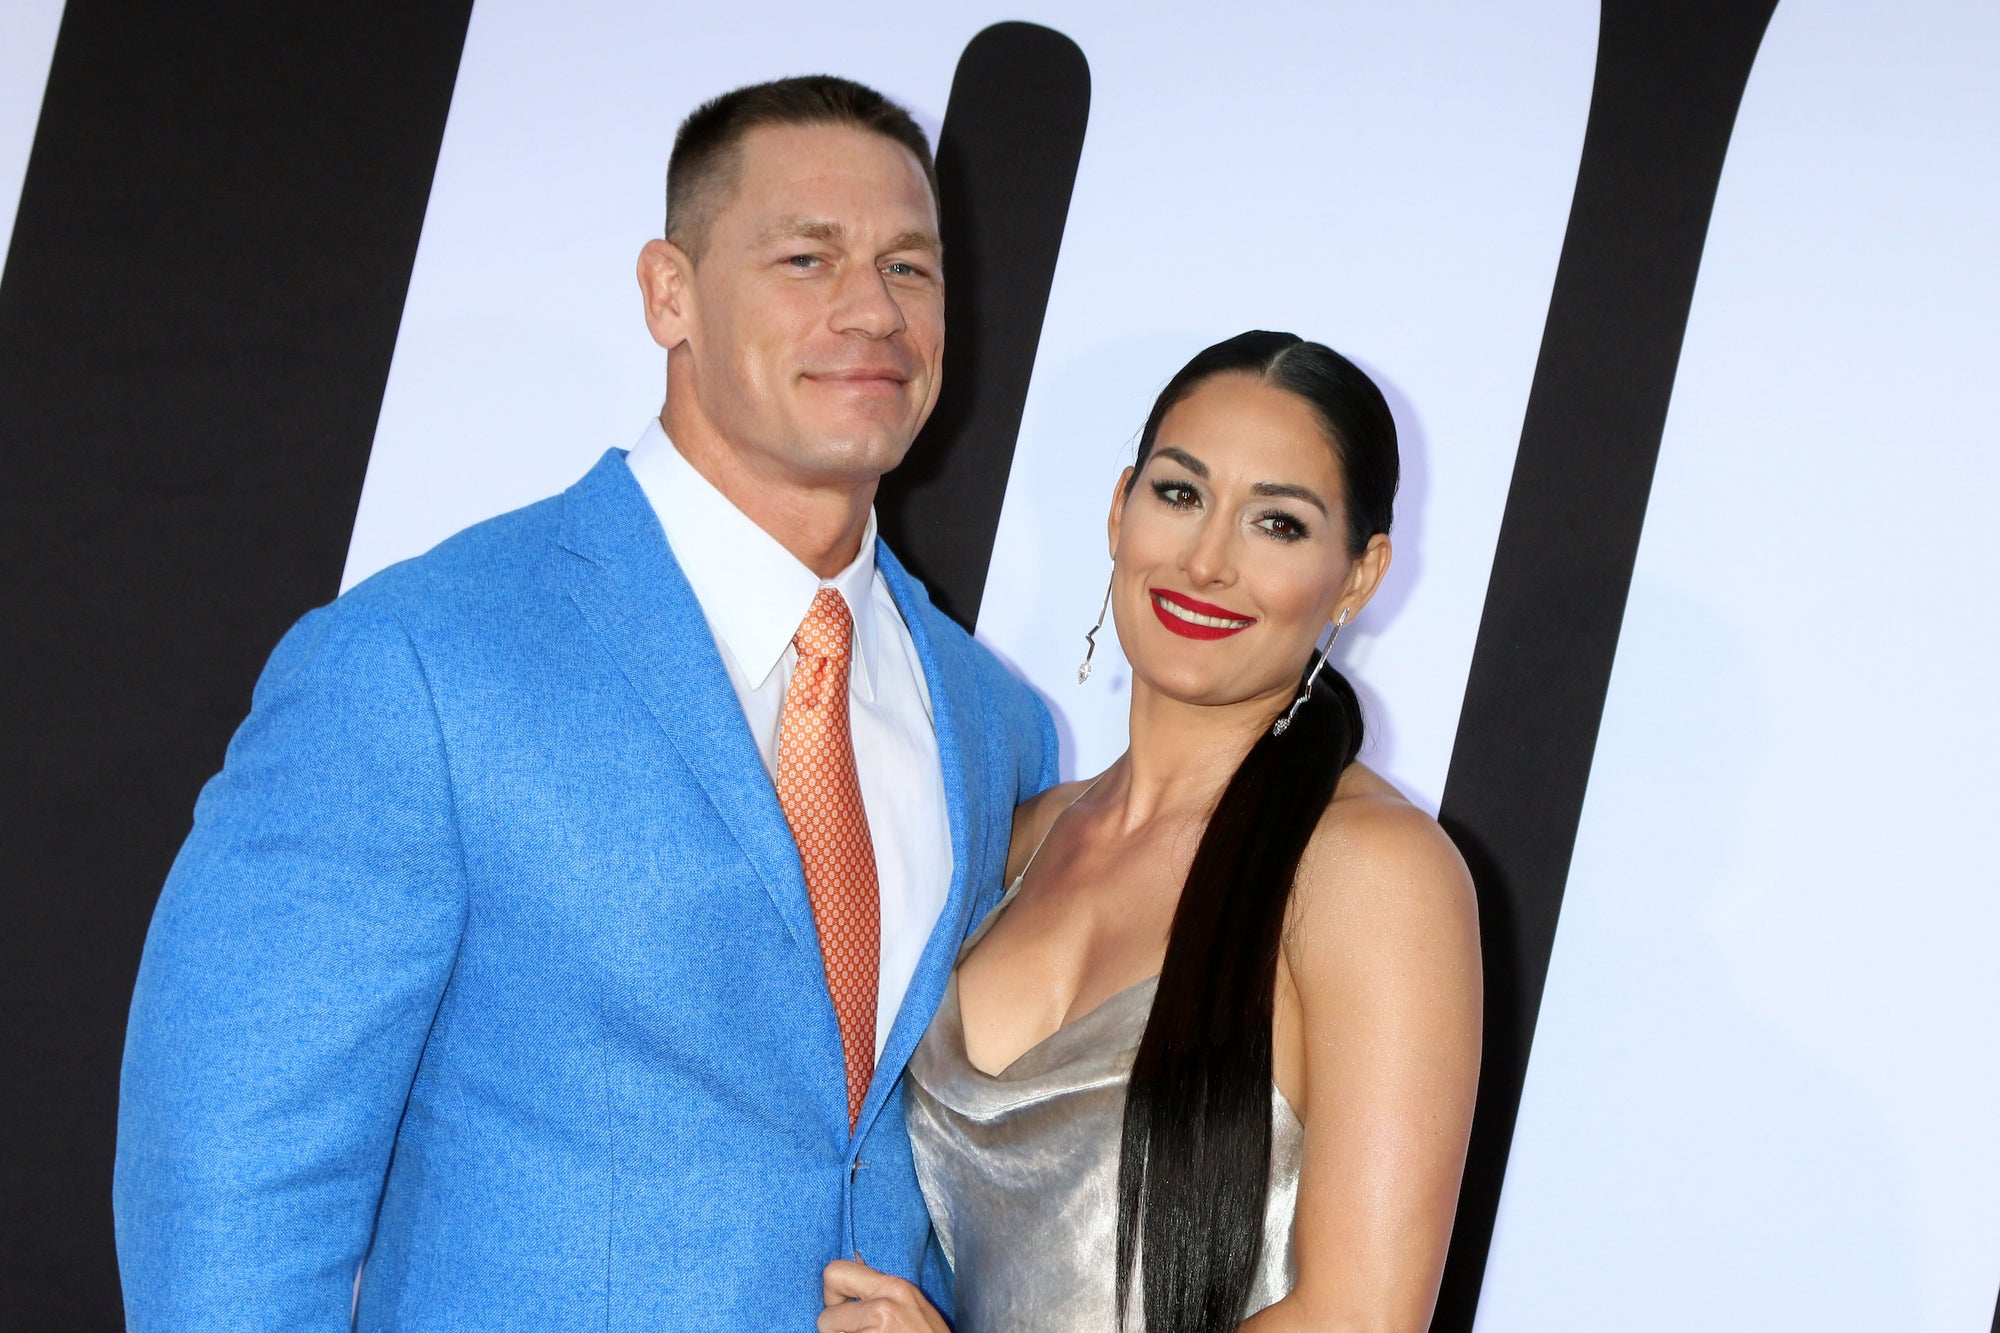 John Cena's Workout Routine and Diet Plan